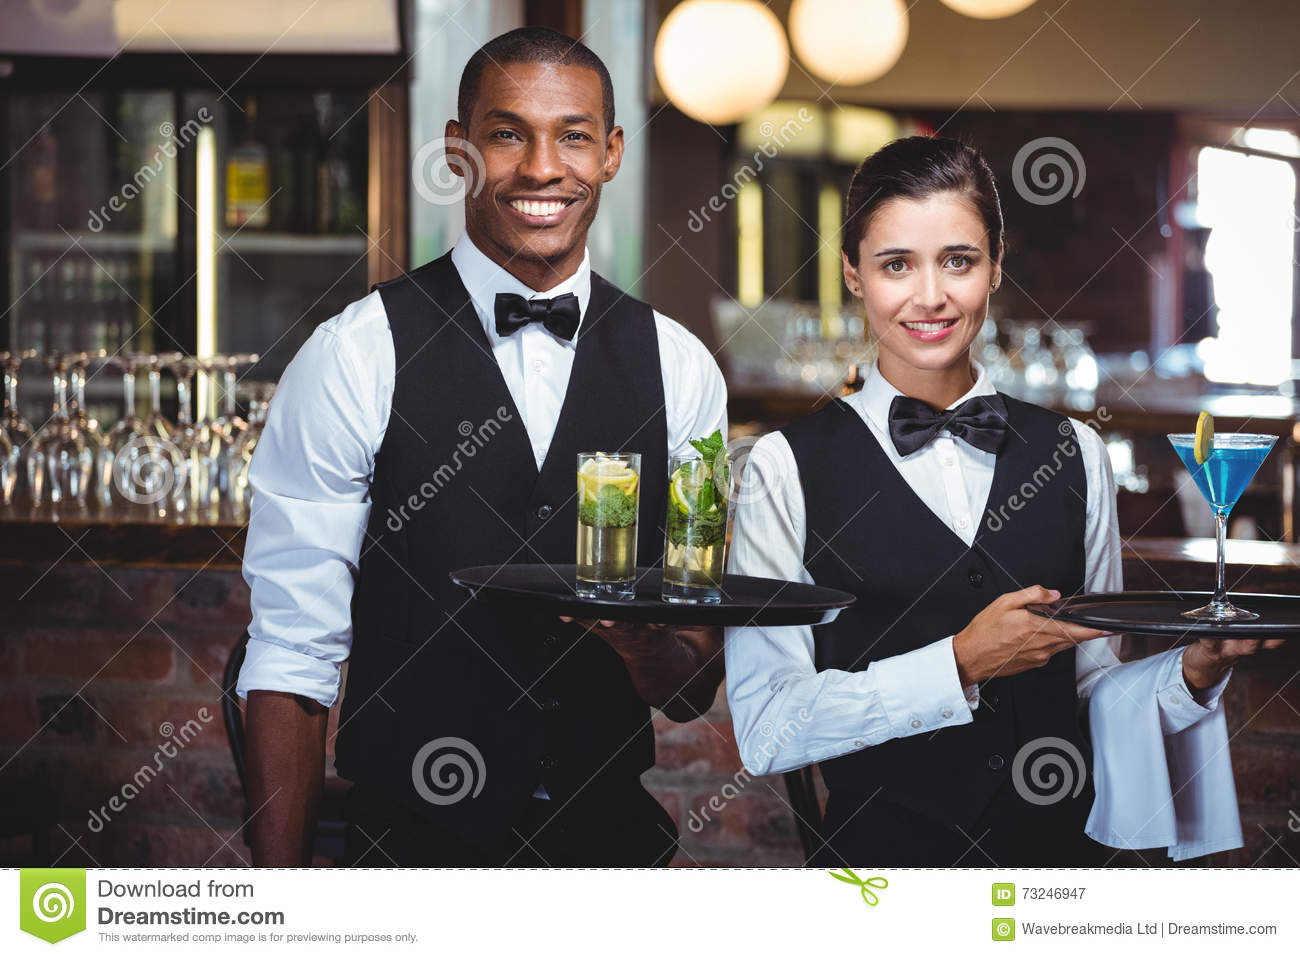 Waiter and waitress holding a serving tray with glass of cocktail